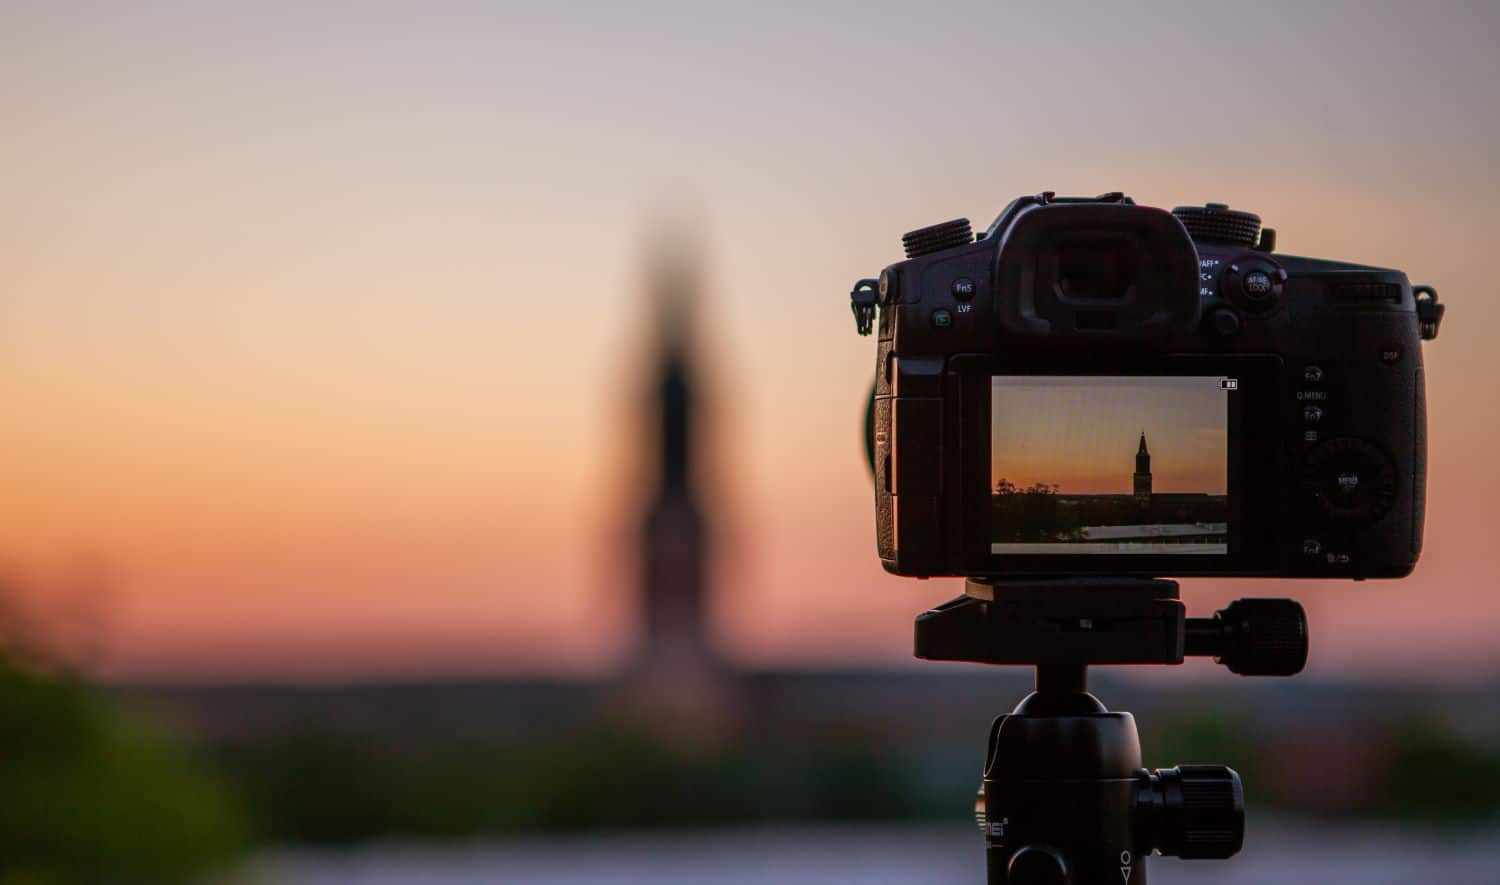 A high-quality camera or phone can help improve your Instagram photos